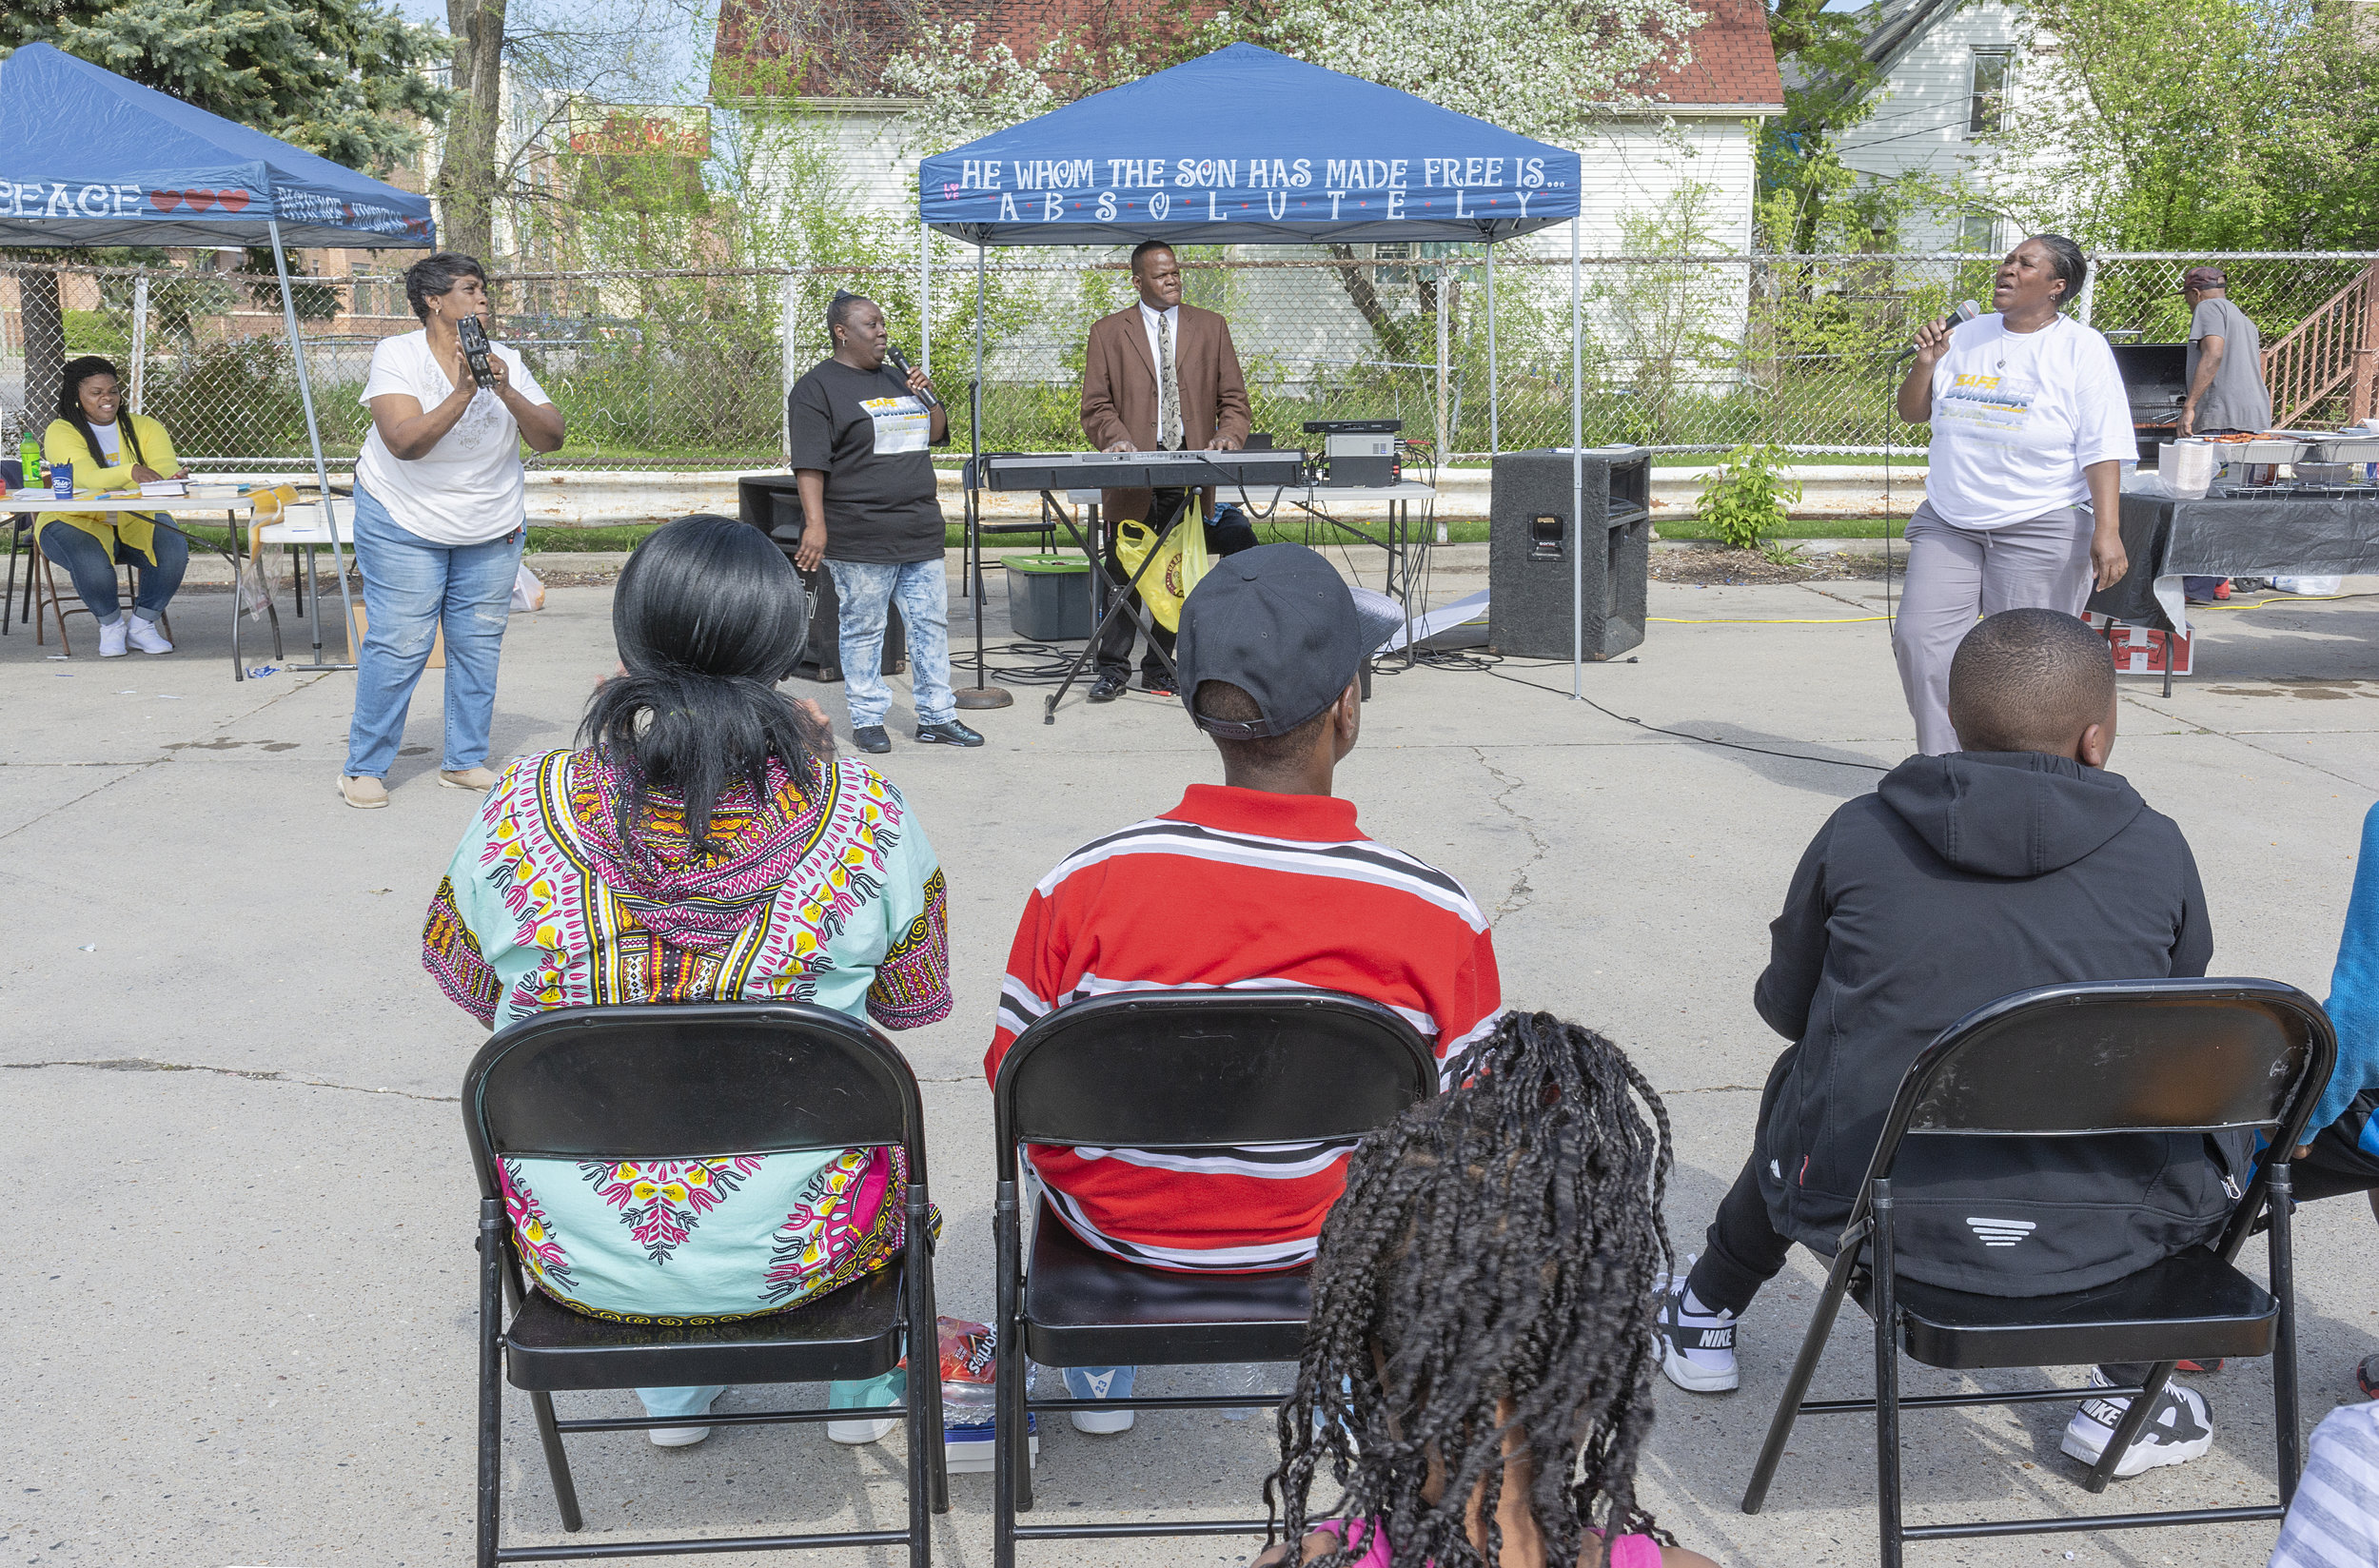 """In the heart of the inner city, I found a small church converted from an old liquor store. The sign read Faith Harvest Outreach Ministries. The service was being held in the parking lot. After a while, the singer turned to sermonizing. She shouted, """"I am no longer an adulterous, I have given my heart to Jesus."""" The listeners yelled, """"Hallelujah, Sister!""""  Later, I told Pastor Ken I found the performance inspiring. He gave me a brochure, a list of Peace Covenants. Two covenants stood out for me ….. I WILL PUT NEIGHBOR BACK IN THE HOOD and WHEREVER THERE IS VIOLENCE I WILL MEDIATE PEACE."""